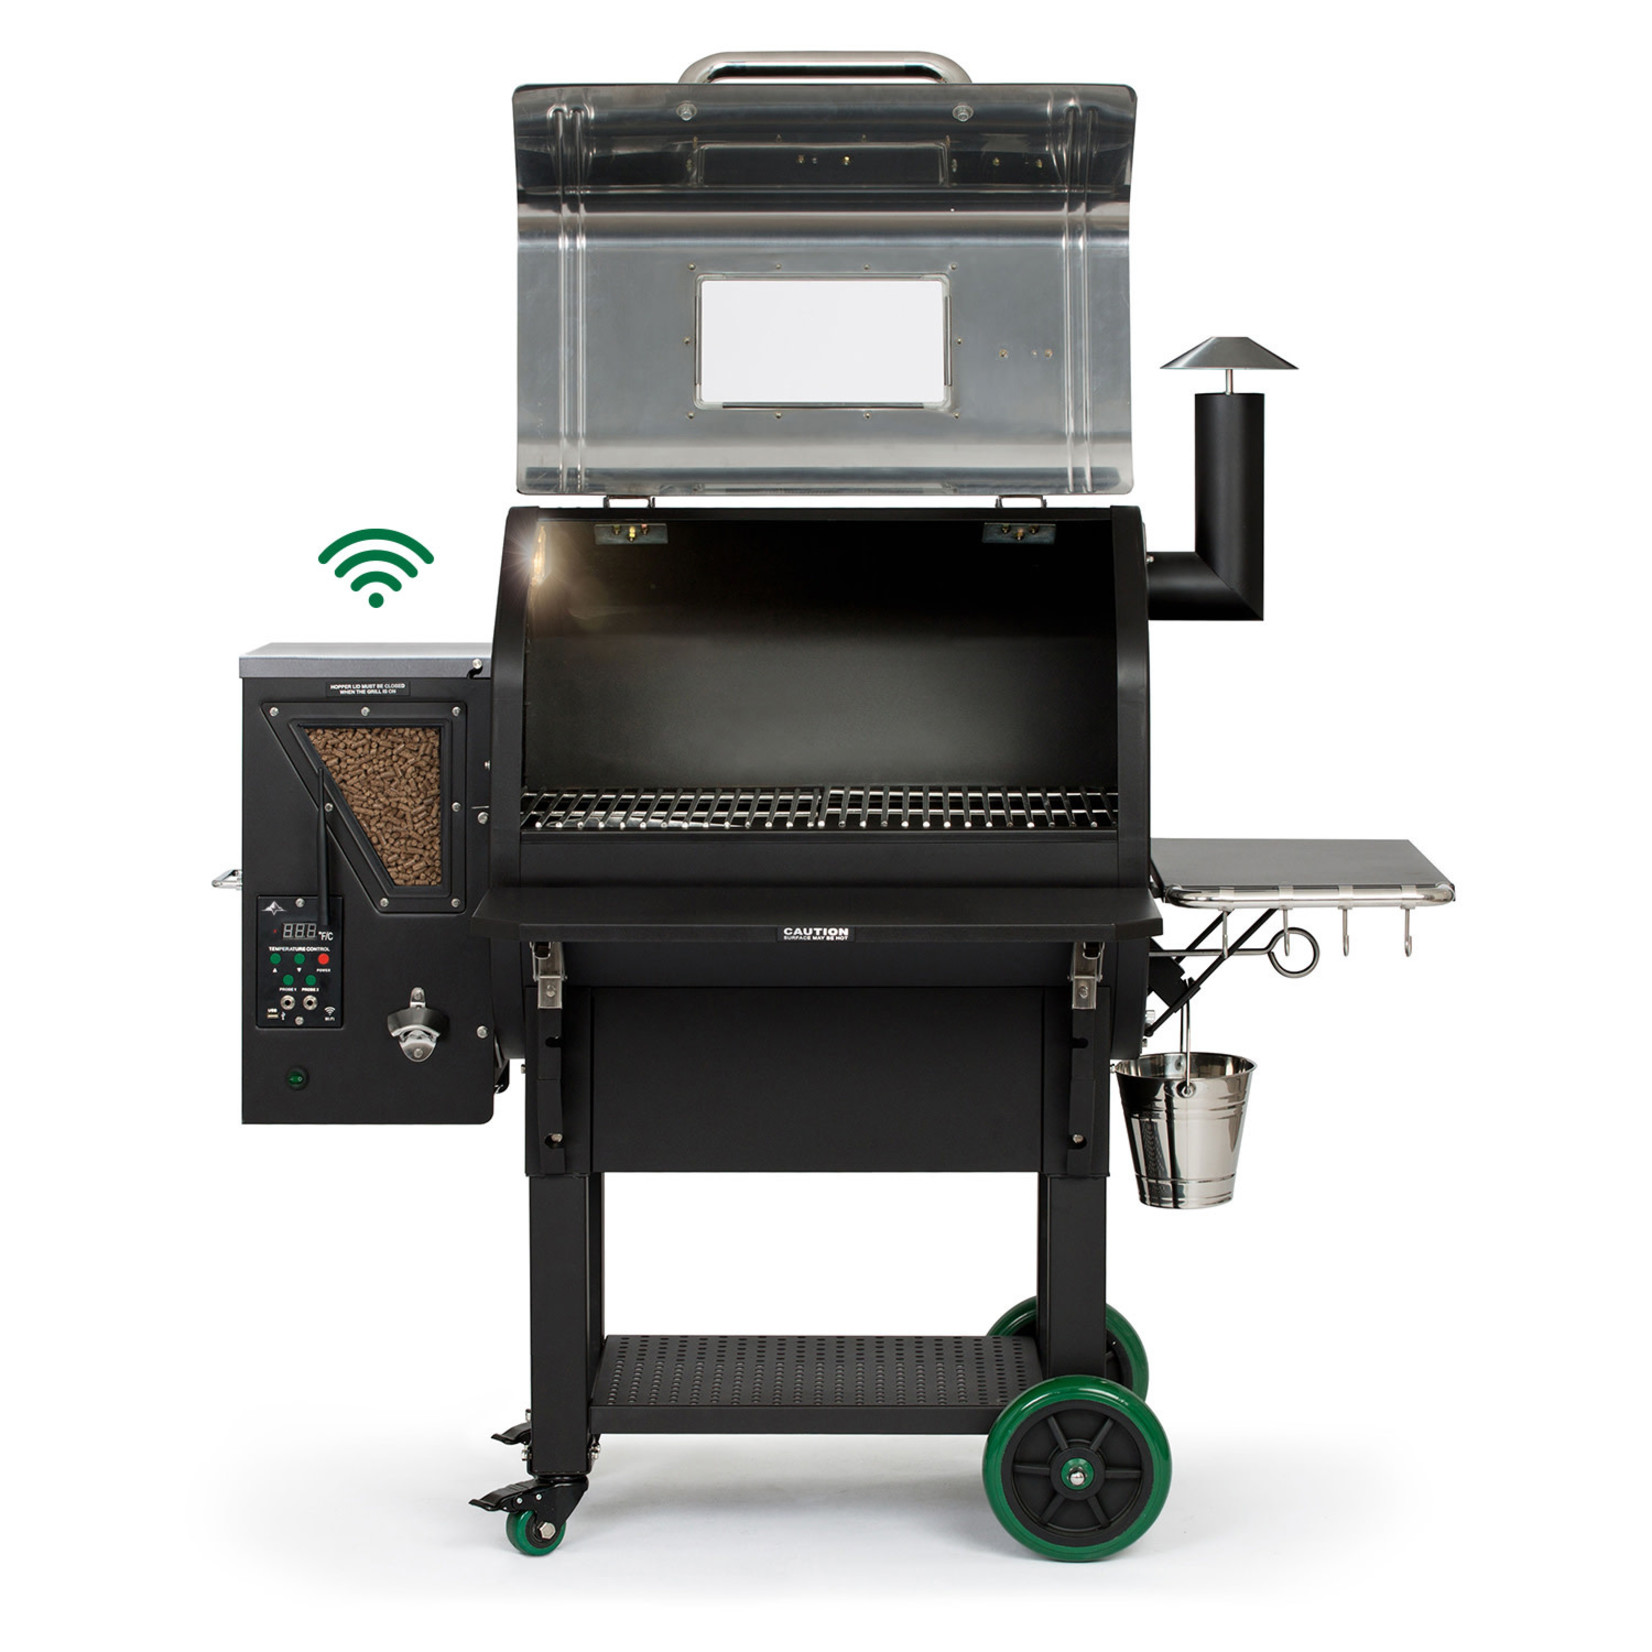 Green Mountain Grill Green Mountain Grill Ledge Prime pellet grill wifi verlichting RVS